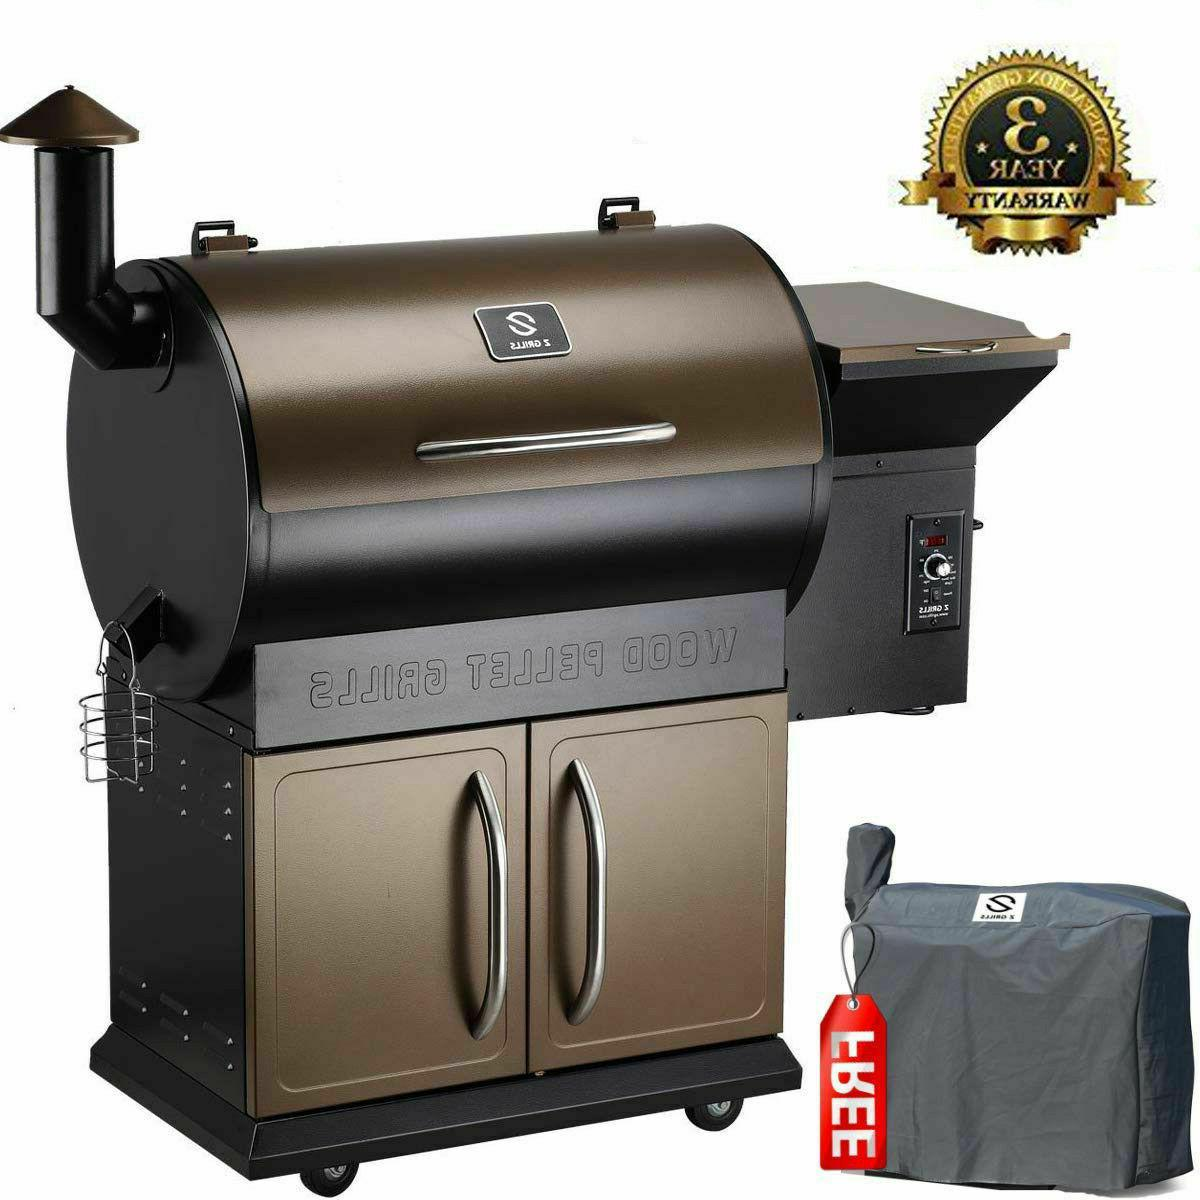 700sq in wood pellet smoker bbq cover